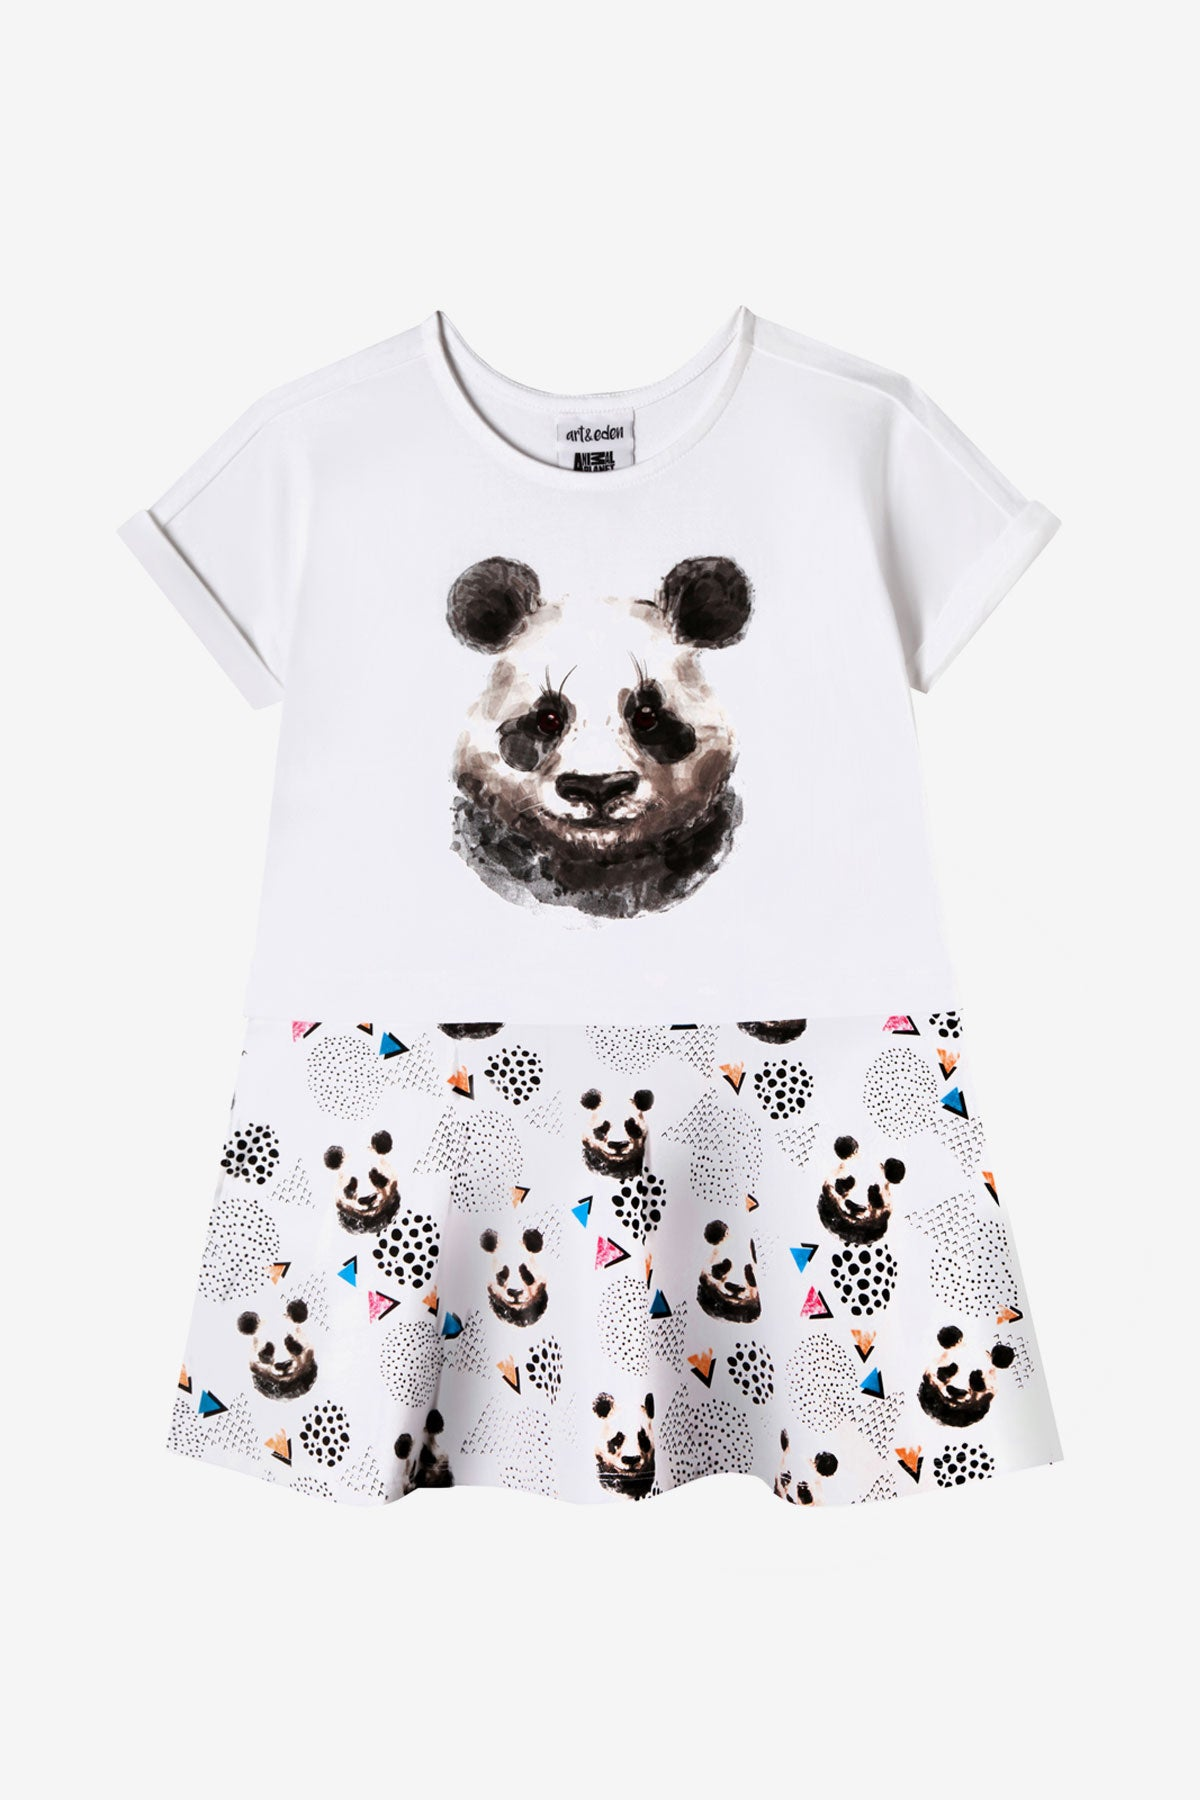 Art & Eden Sahara Panda Dress